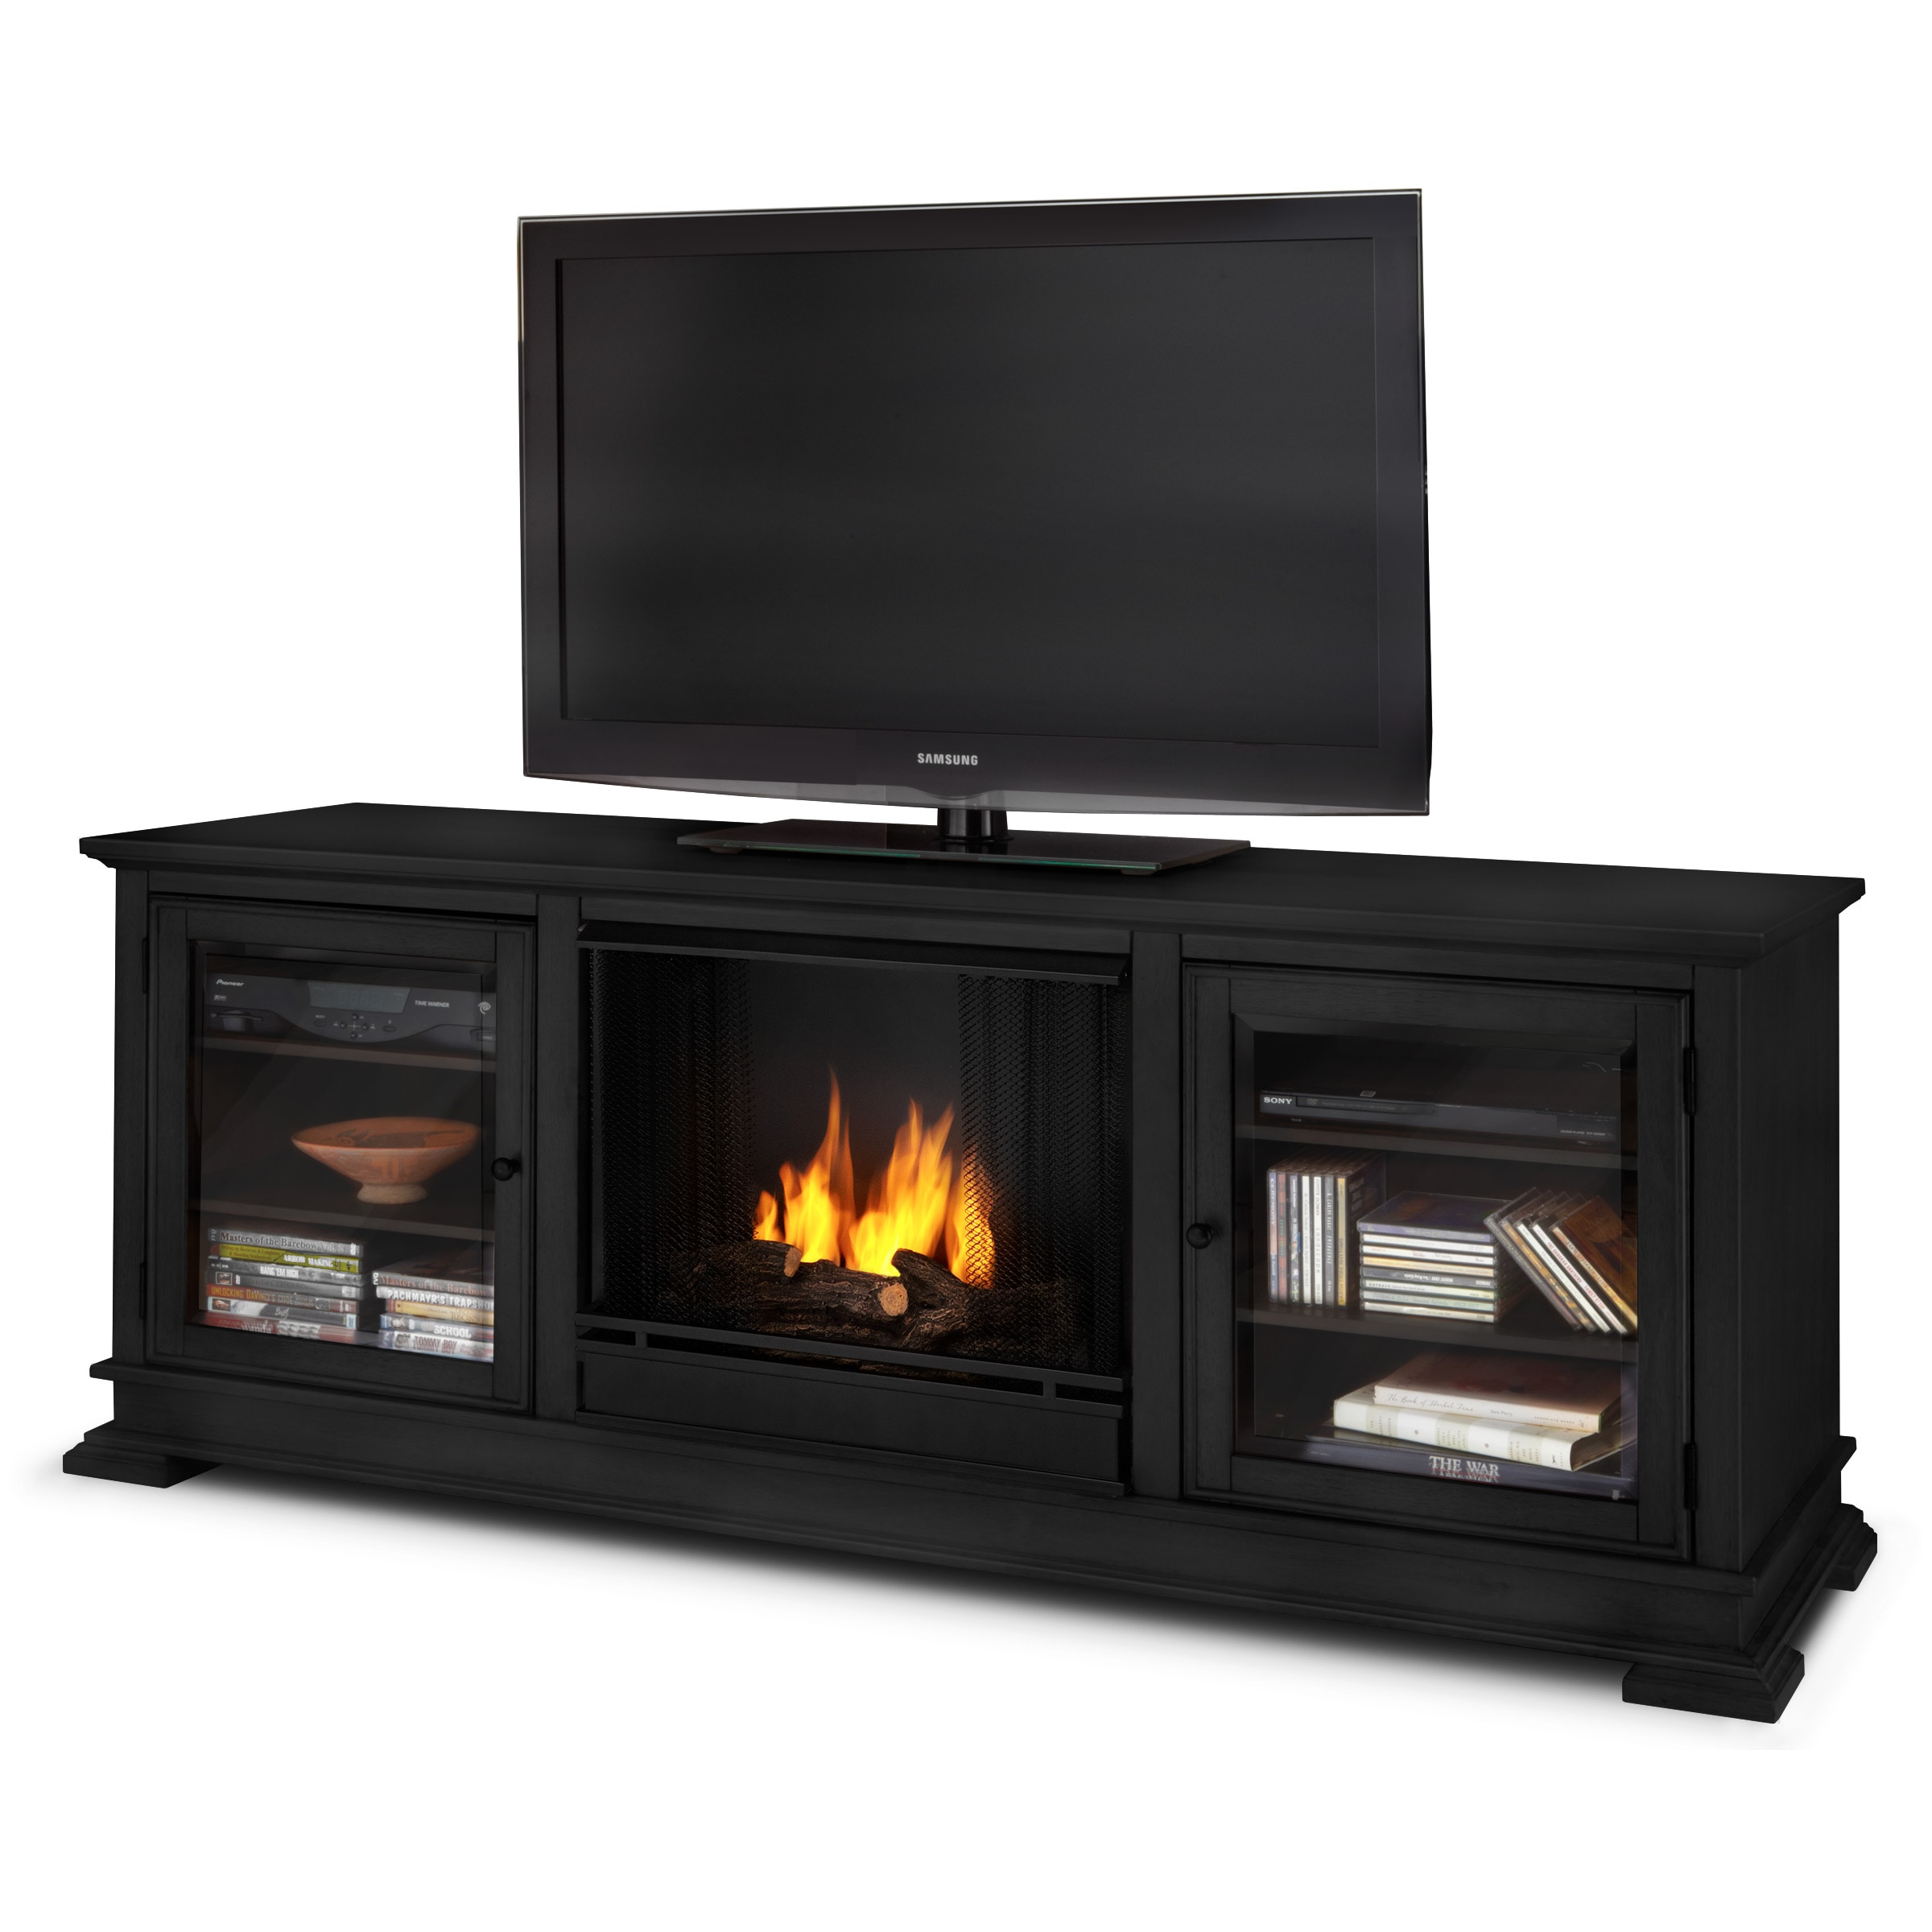 Real Flame Hudson Real Flame Black Ventless Gel Fireplace at Sears.com